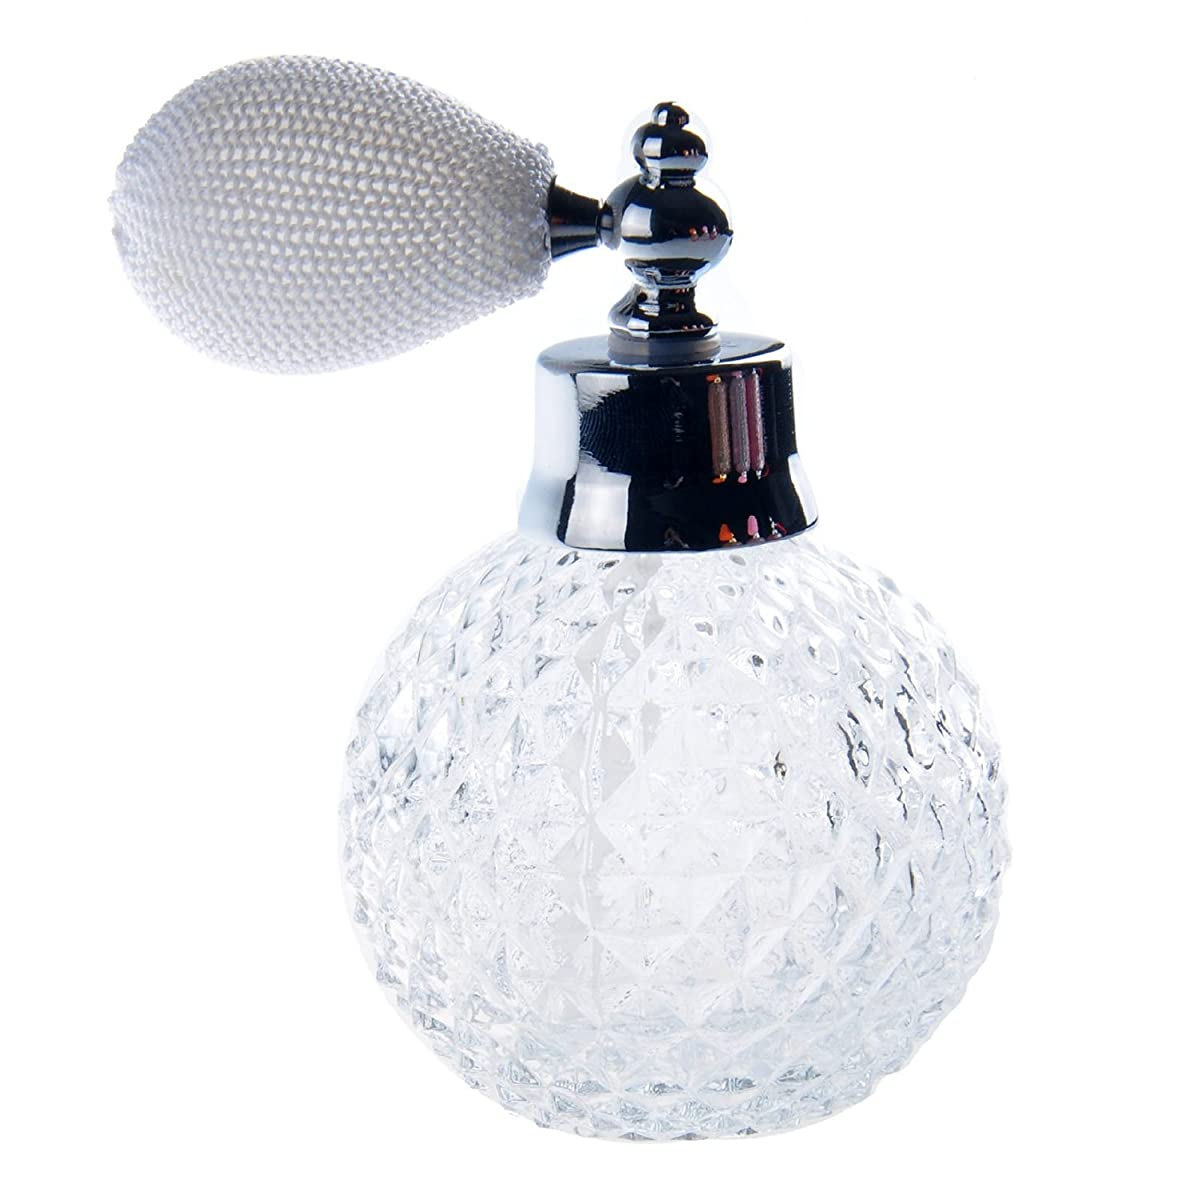 H&D Empty Crystal Vintage Perfume Replacement Spray Bottle Atomizer Luxury Series (clear)